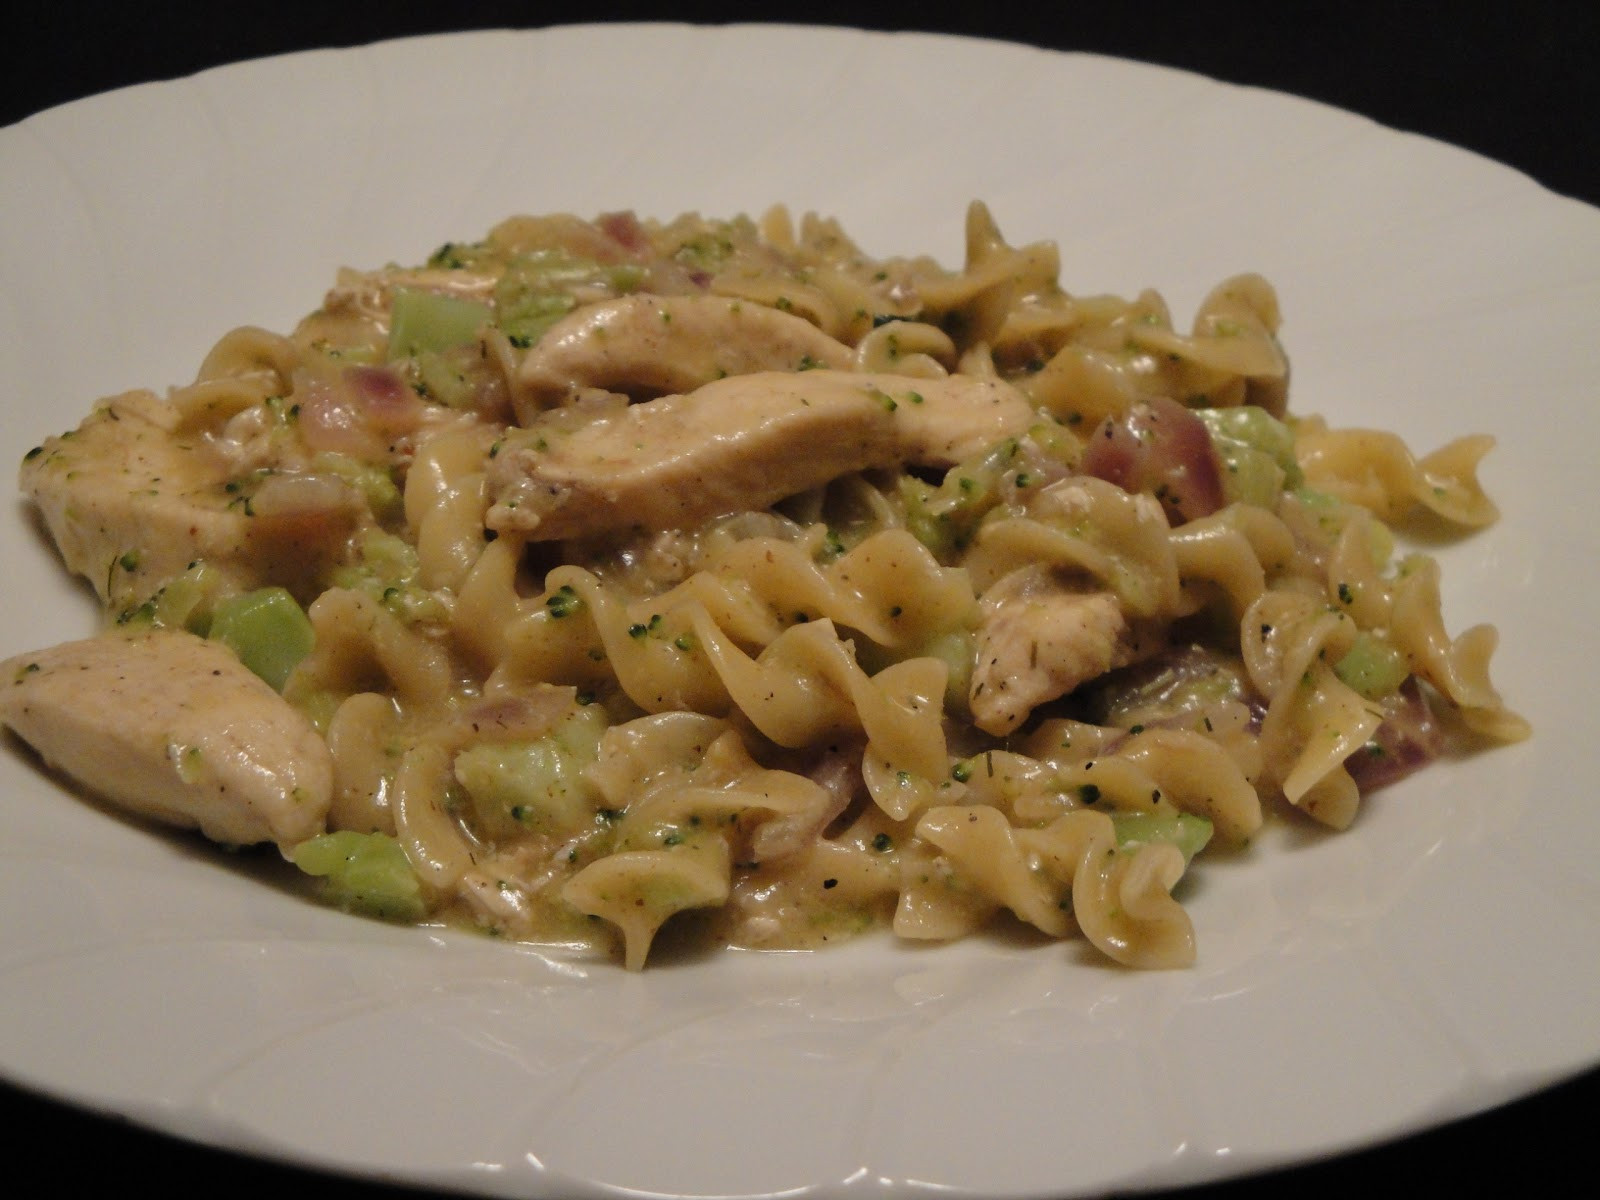 Creamy Chicken And Noodles  Christine s Pantry March 2012